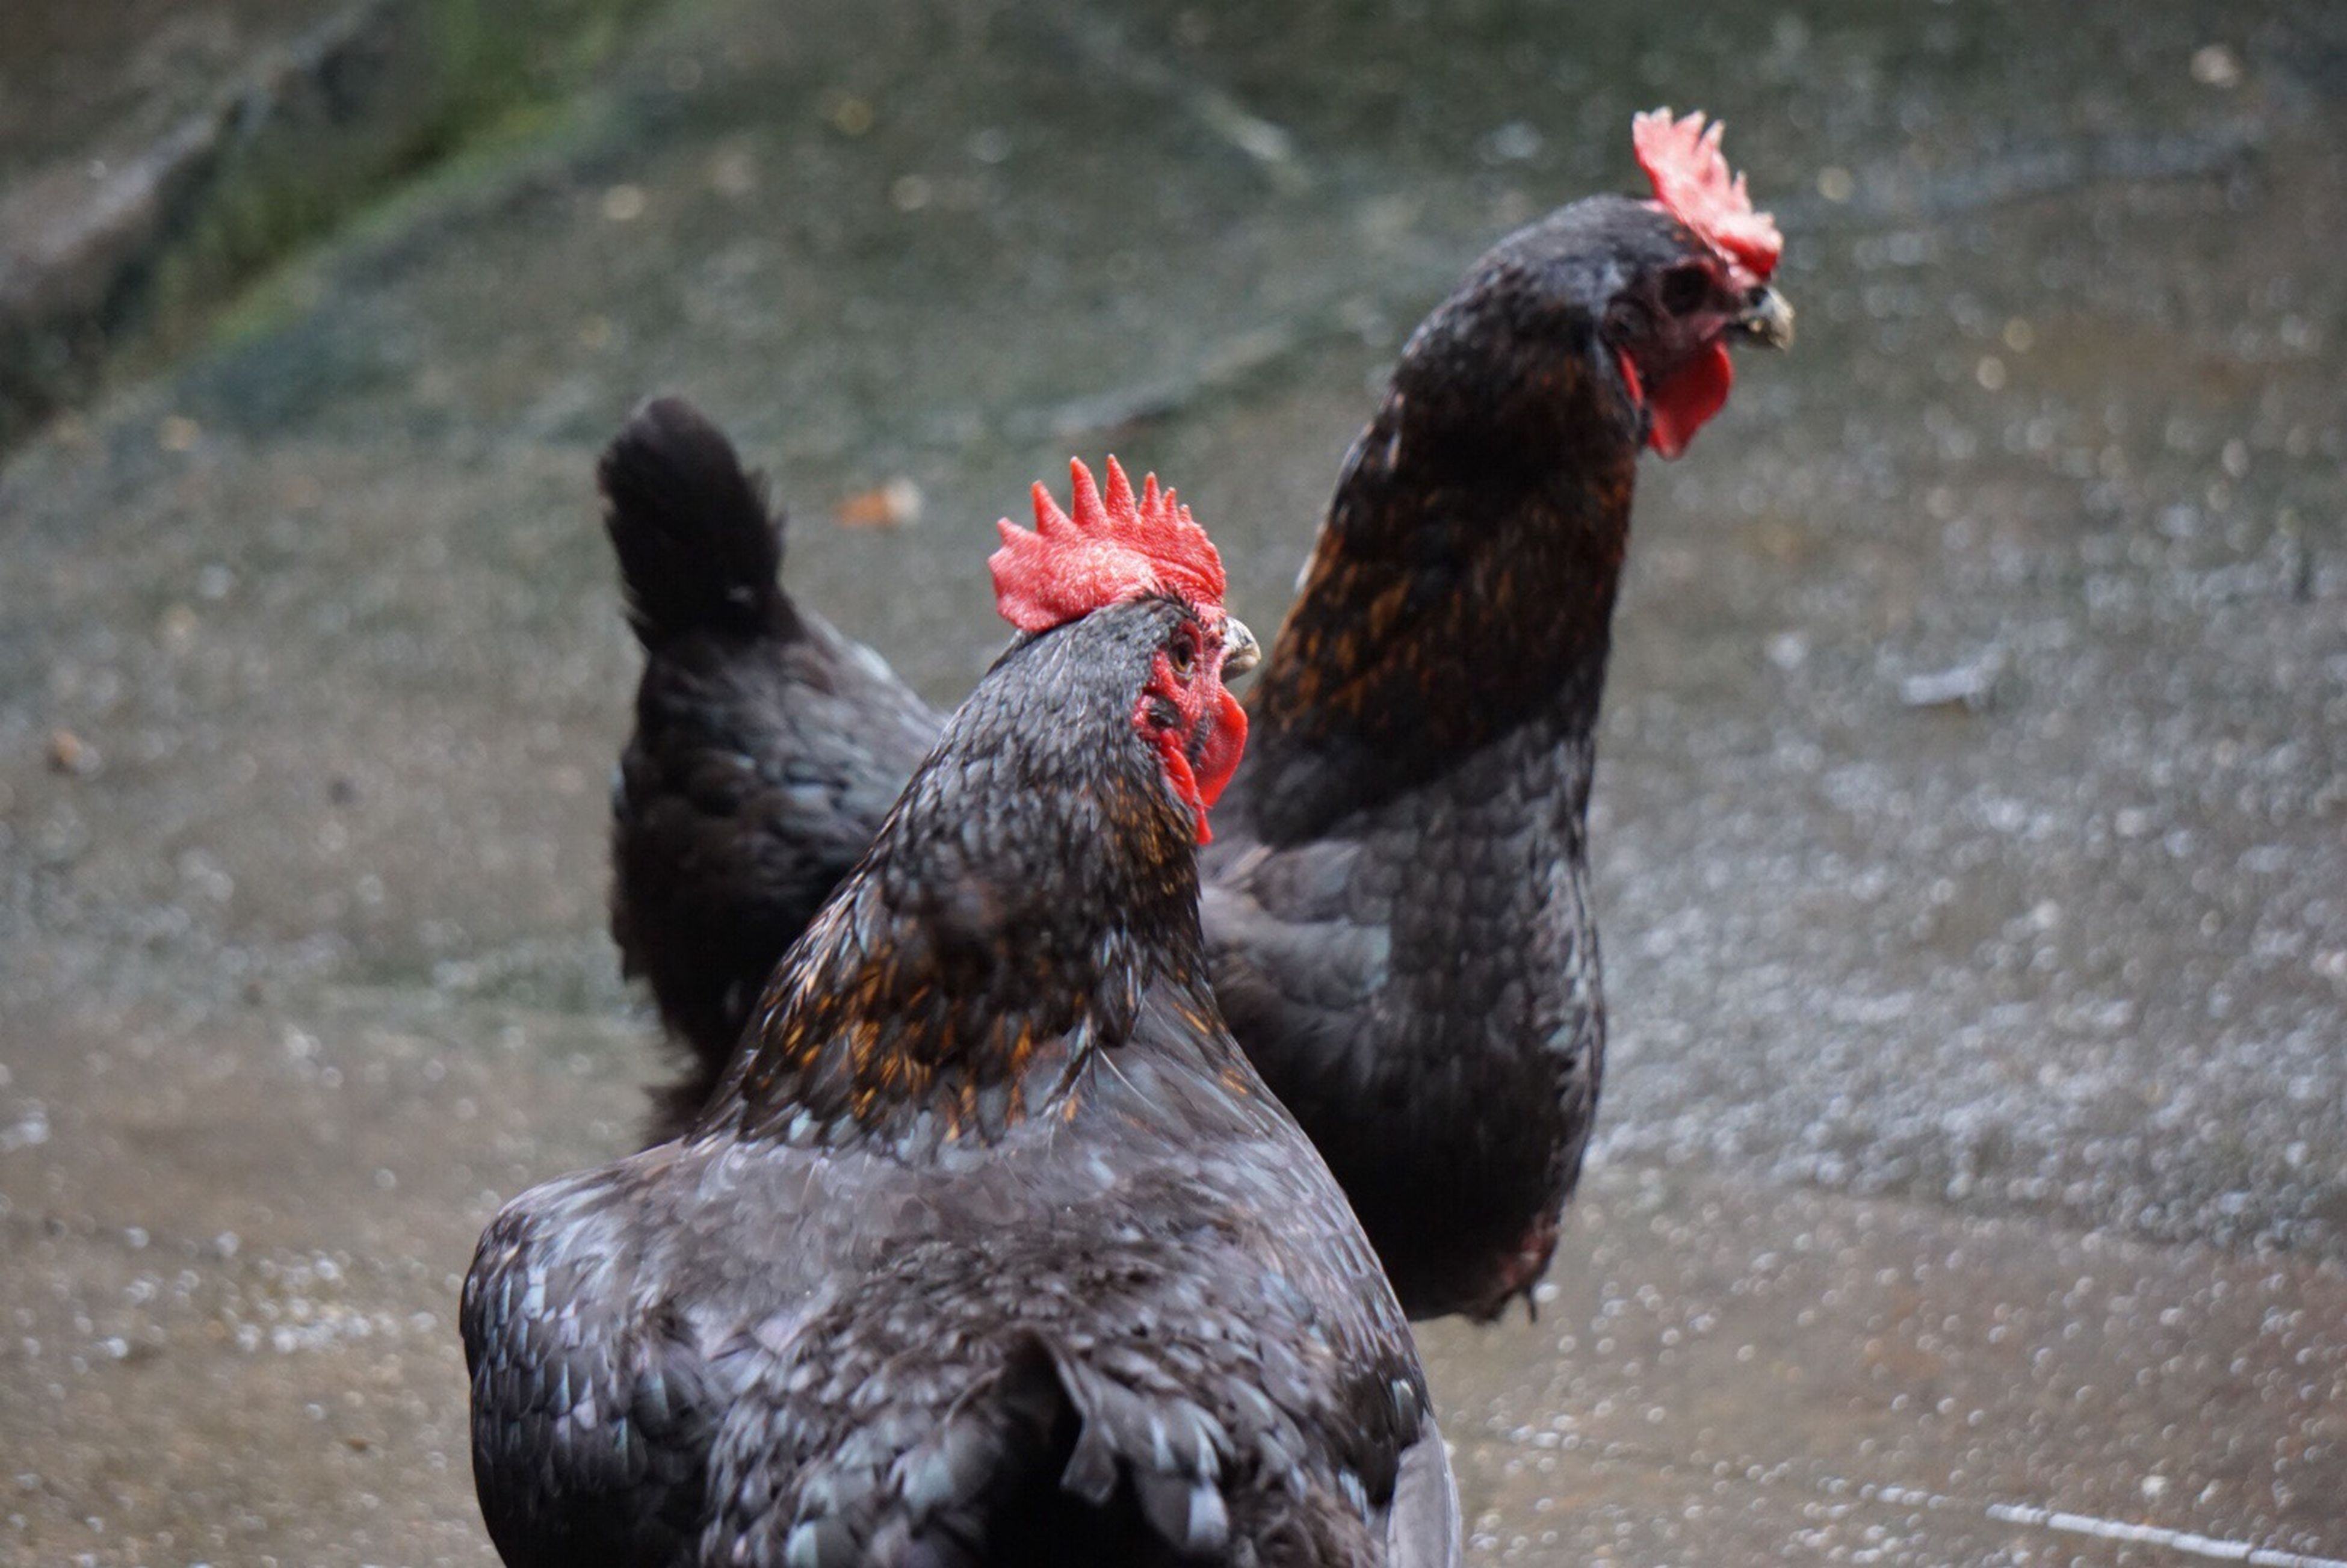 animal themes, bird, one animal, animals in the wild, red, chicken - bird, wildlife, domestic animals, rooster, focus on foreground, livestock, hen, close-up, black color, day, nature, outdoors, two animals, zoology, no people